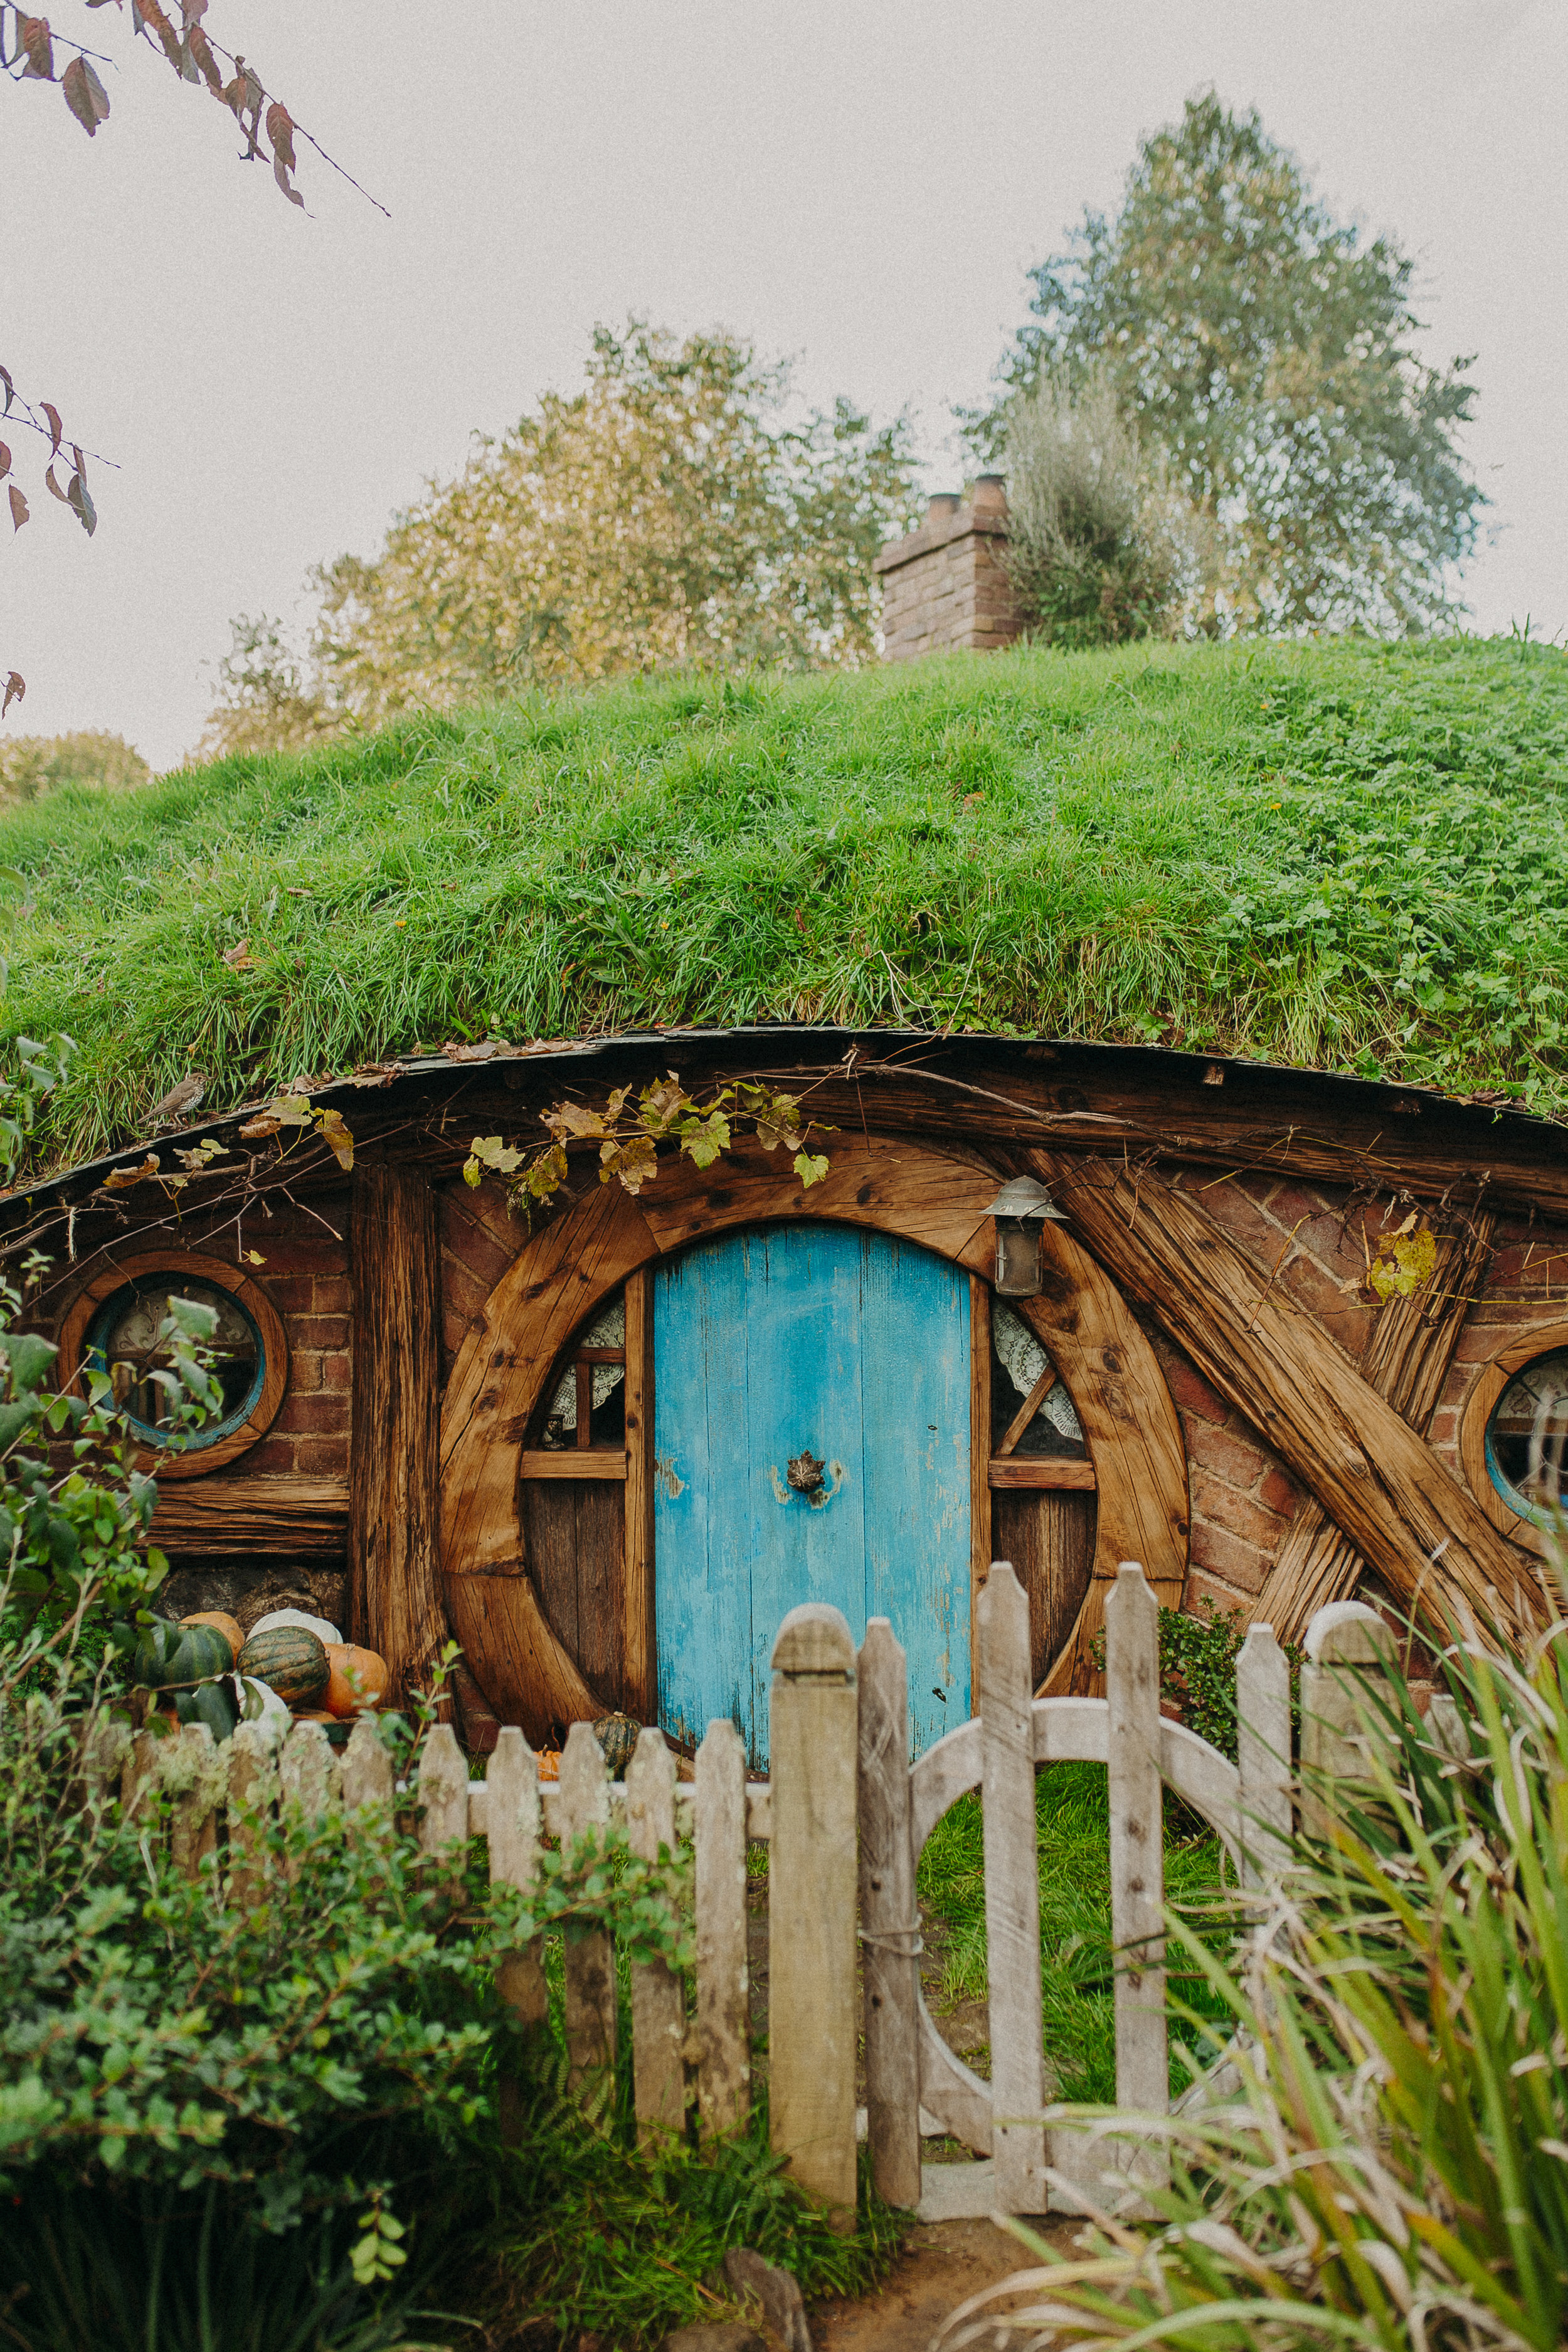 hobbiton-new-zealand-lord-of-the-rings-tour.jpg